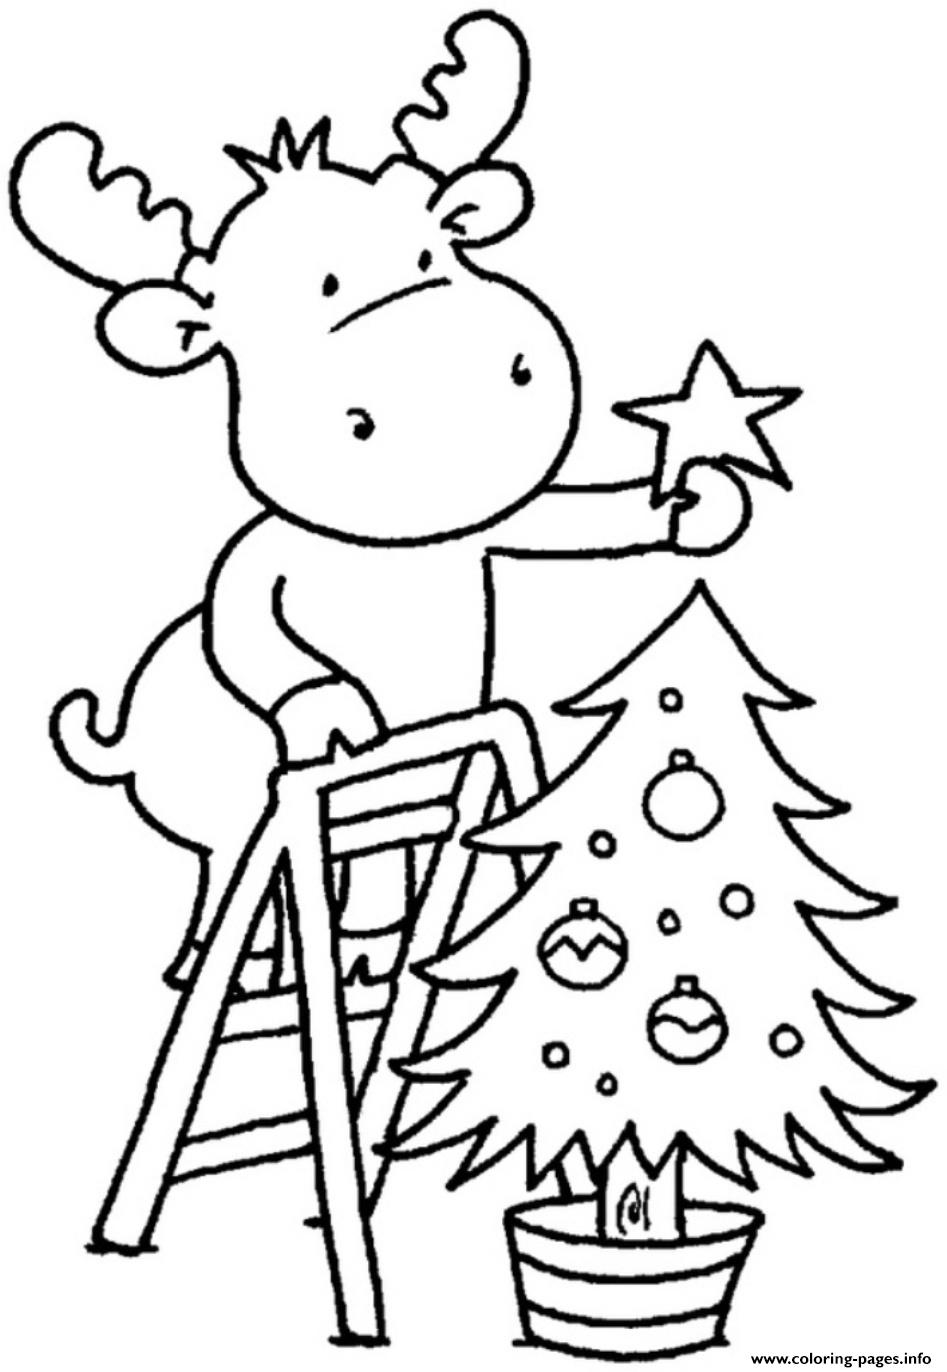 Christmas Tree For Children Coloring